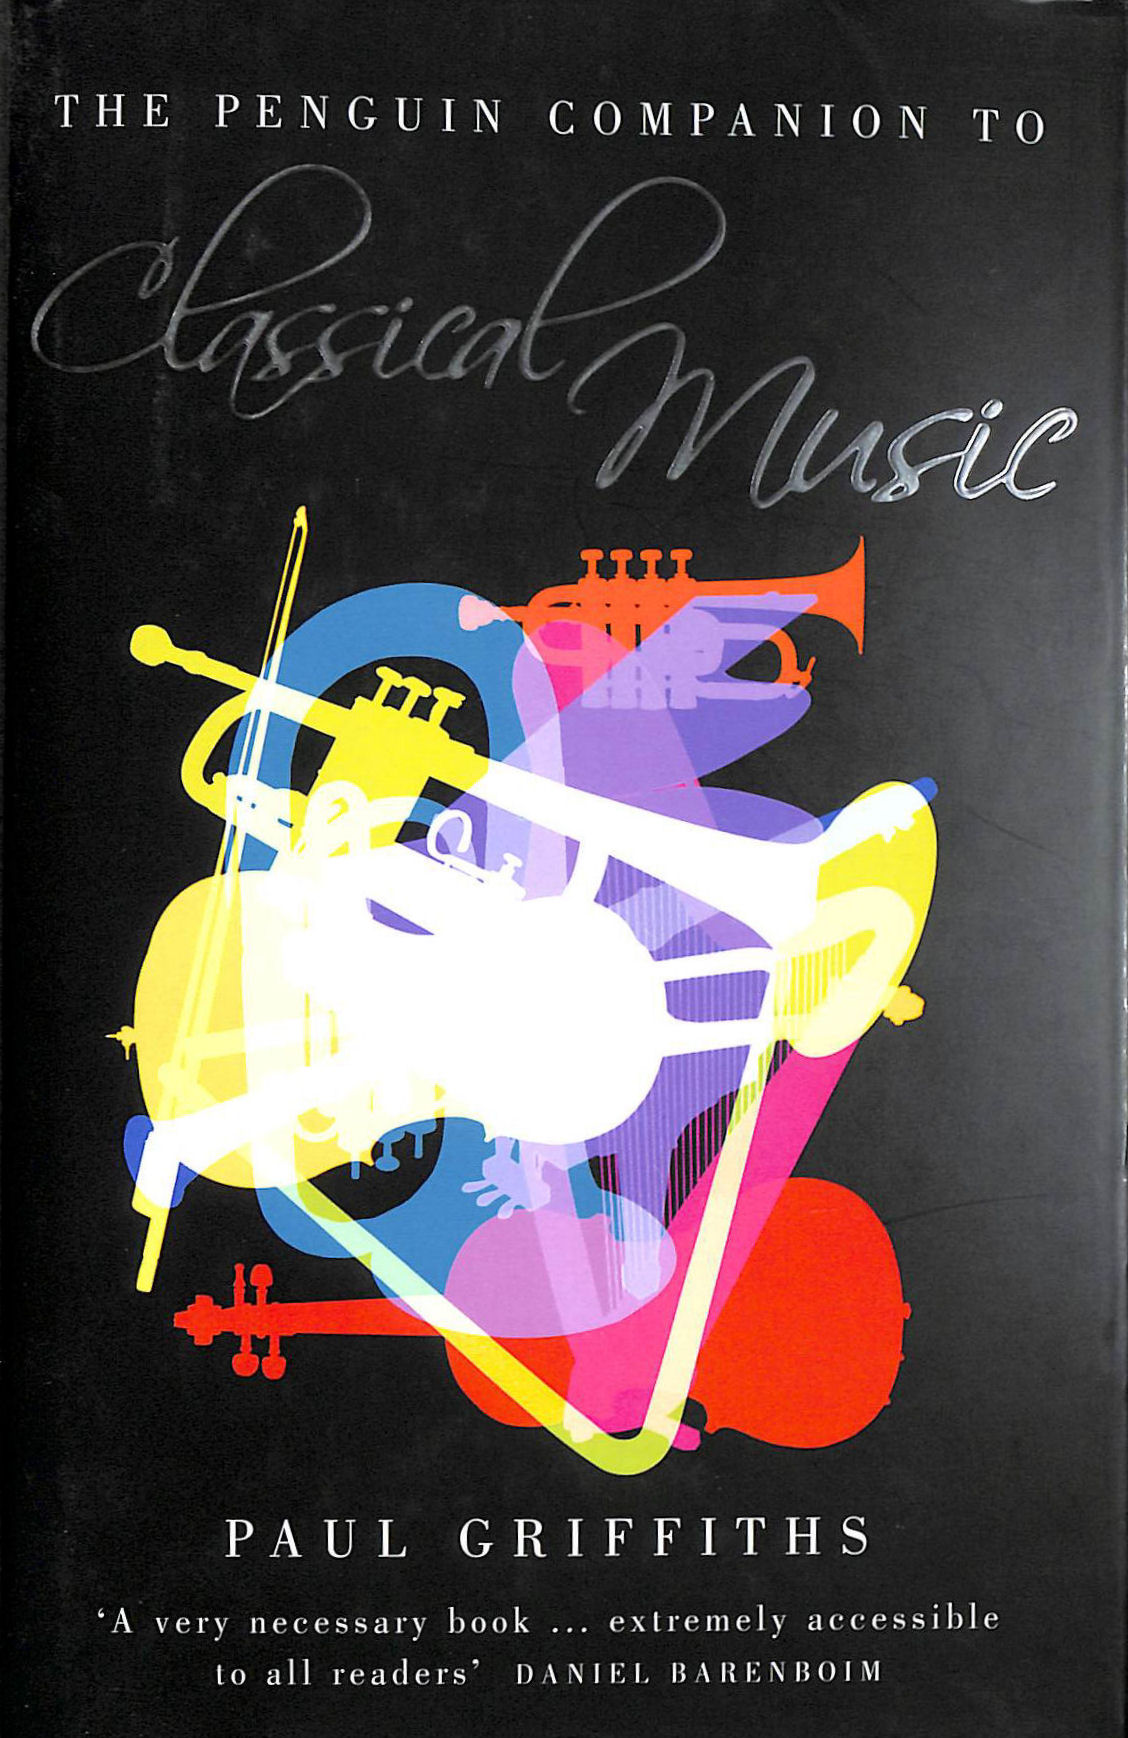 Image for The Penguin Companion to Classical Music